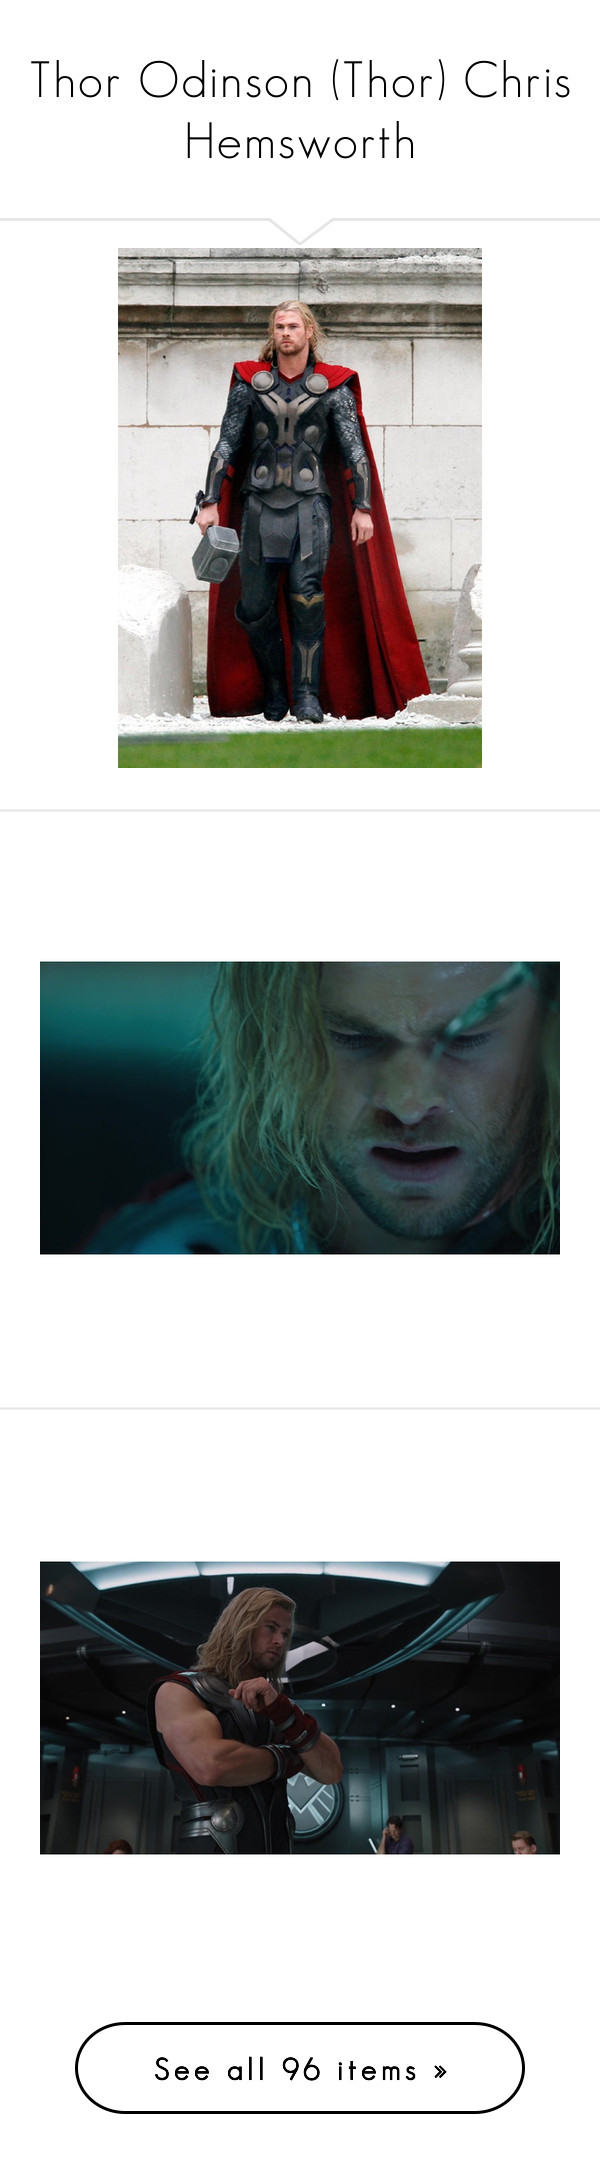 """""""Thor Odinson (Thor) Chris Hemsworth"""" by damonsxlvatore ❤ liked on Polyvore featuring marvel, thor, avengers, chris hemsworth, marvel thor, pictures, characters, filler, the avengers and accessories"""